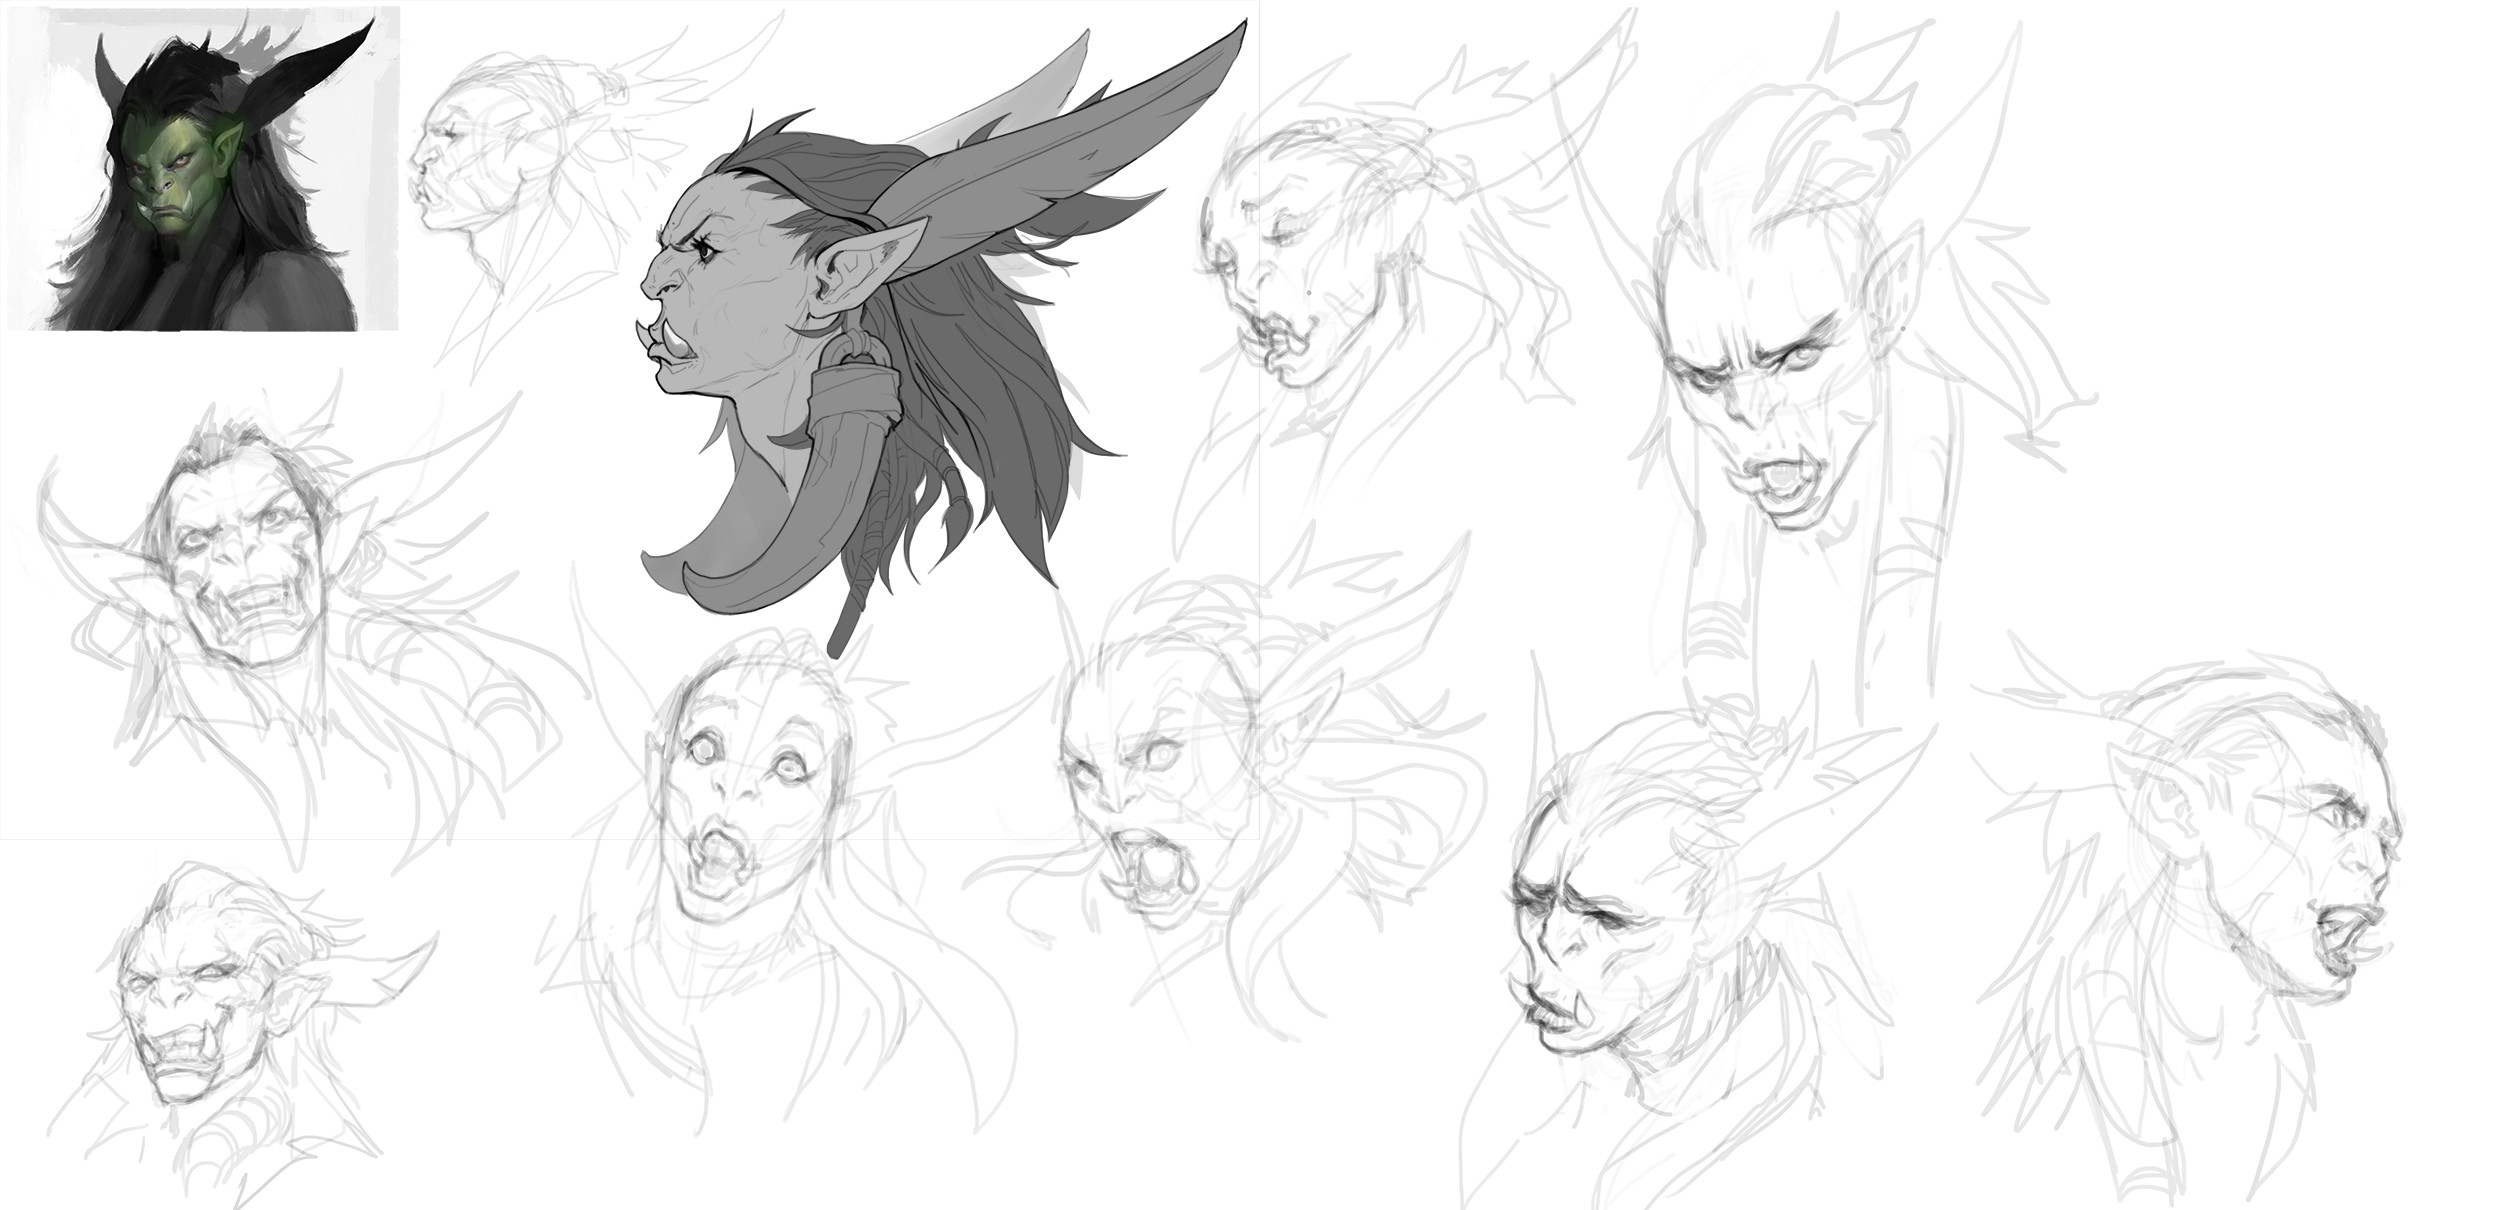 WoW inspired character - expressions